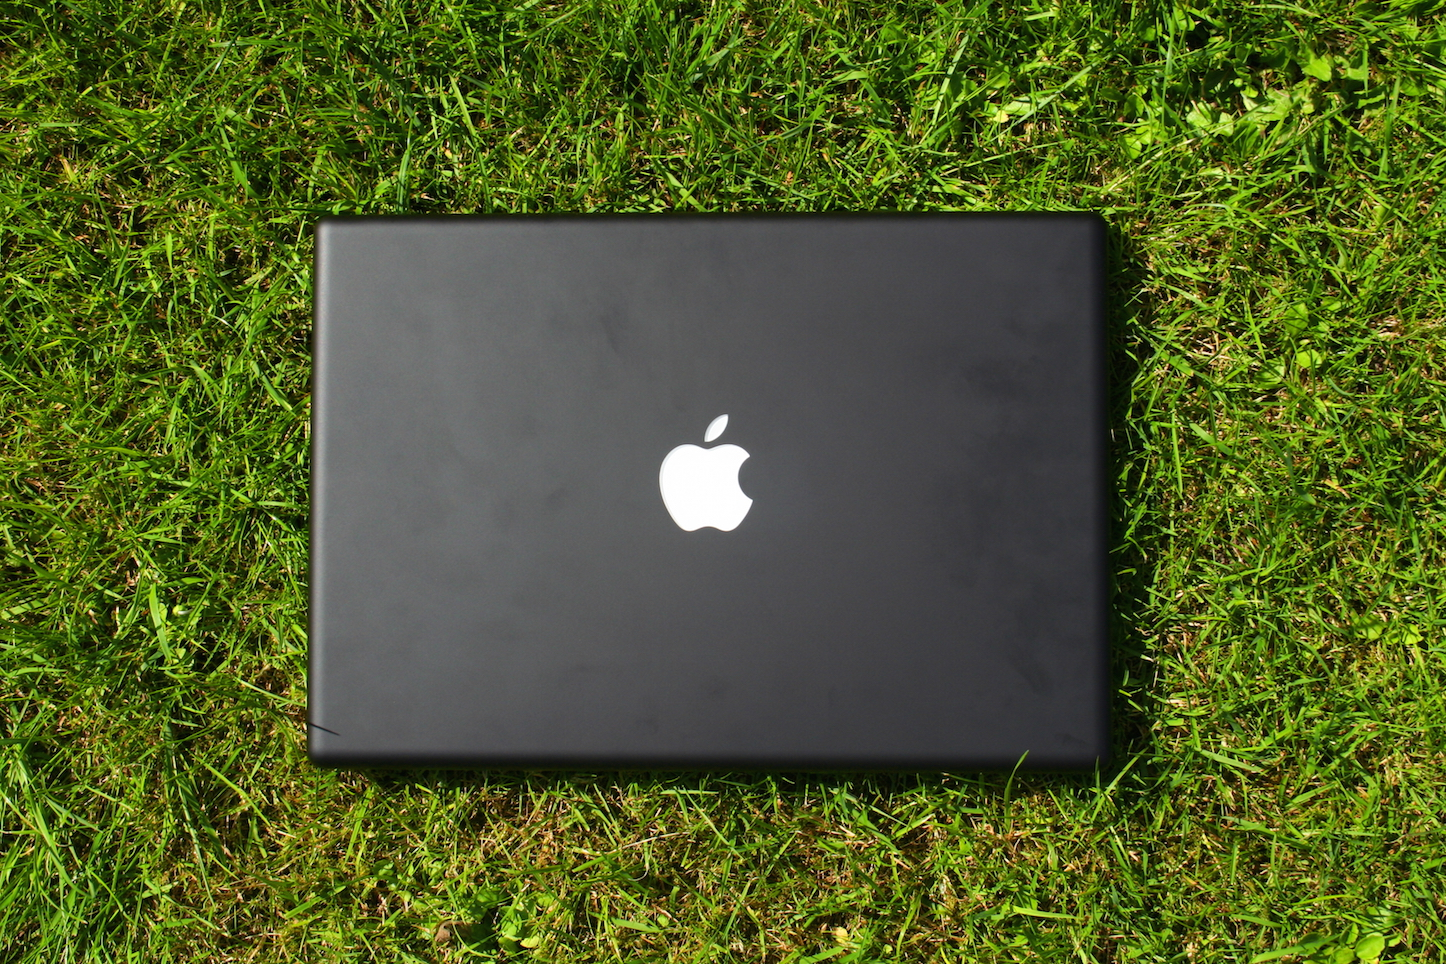 Macbook on grass